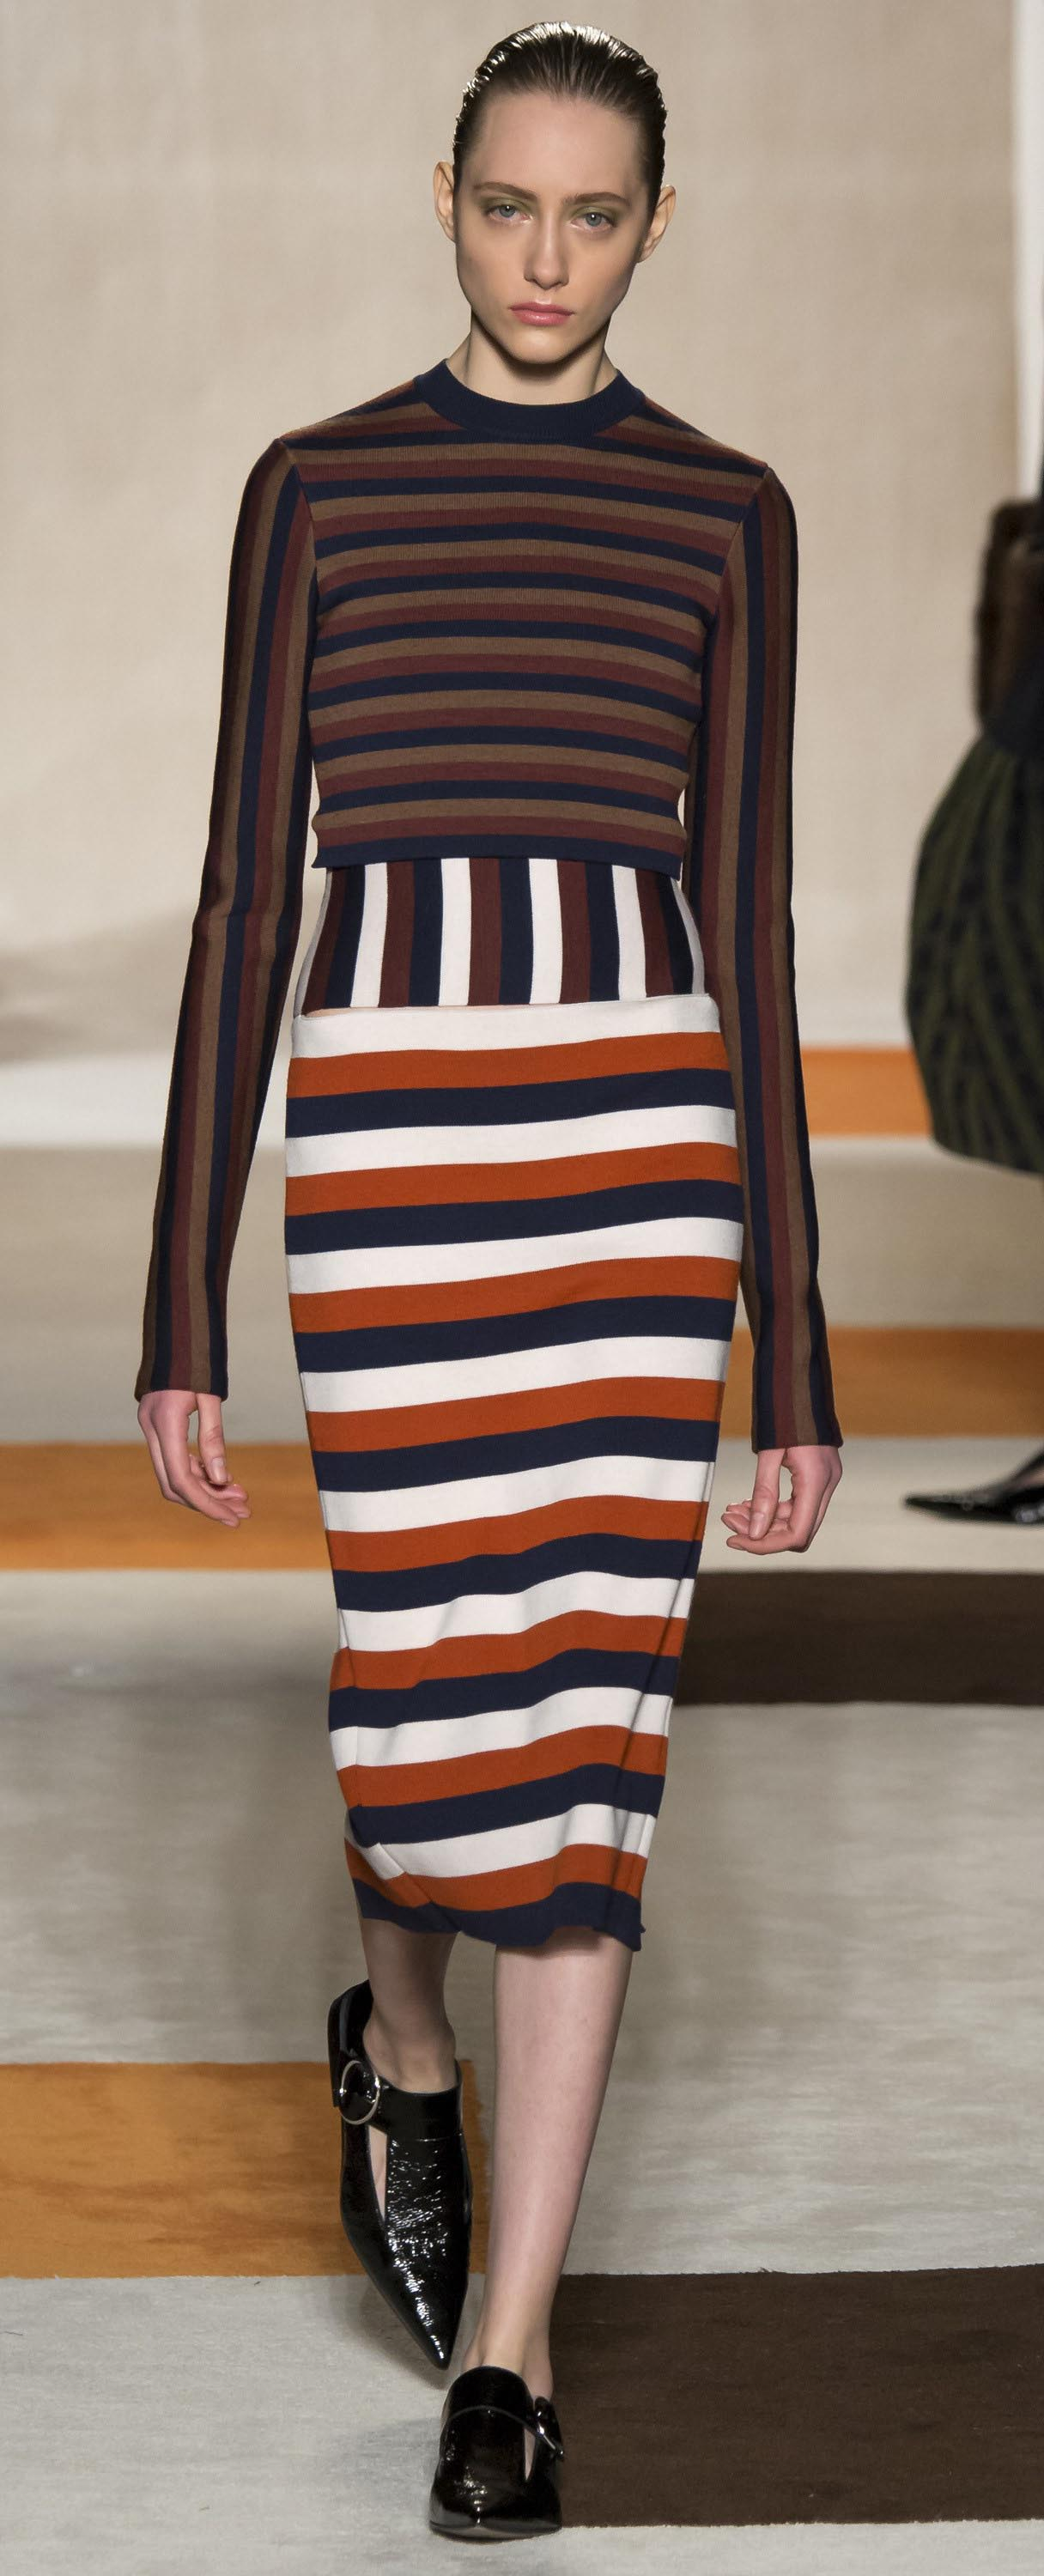 detail-dramatic-style-type-runway-mix-stripes-print-pencil-brogues.jpg